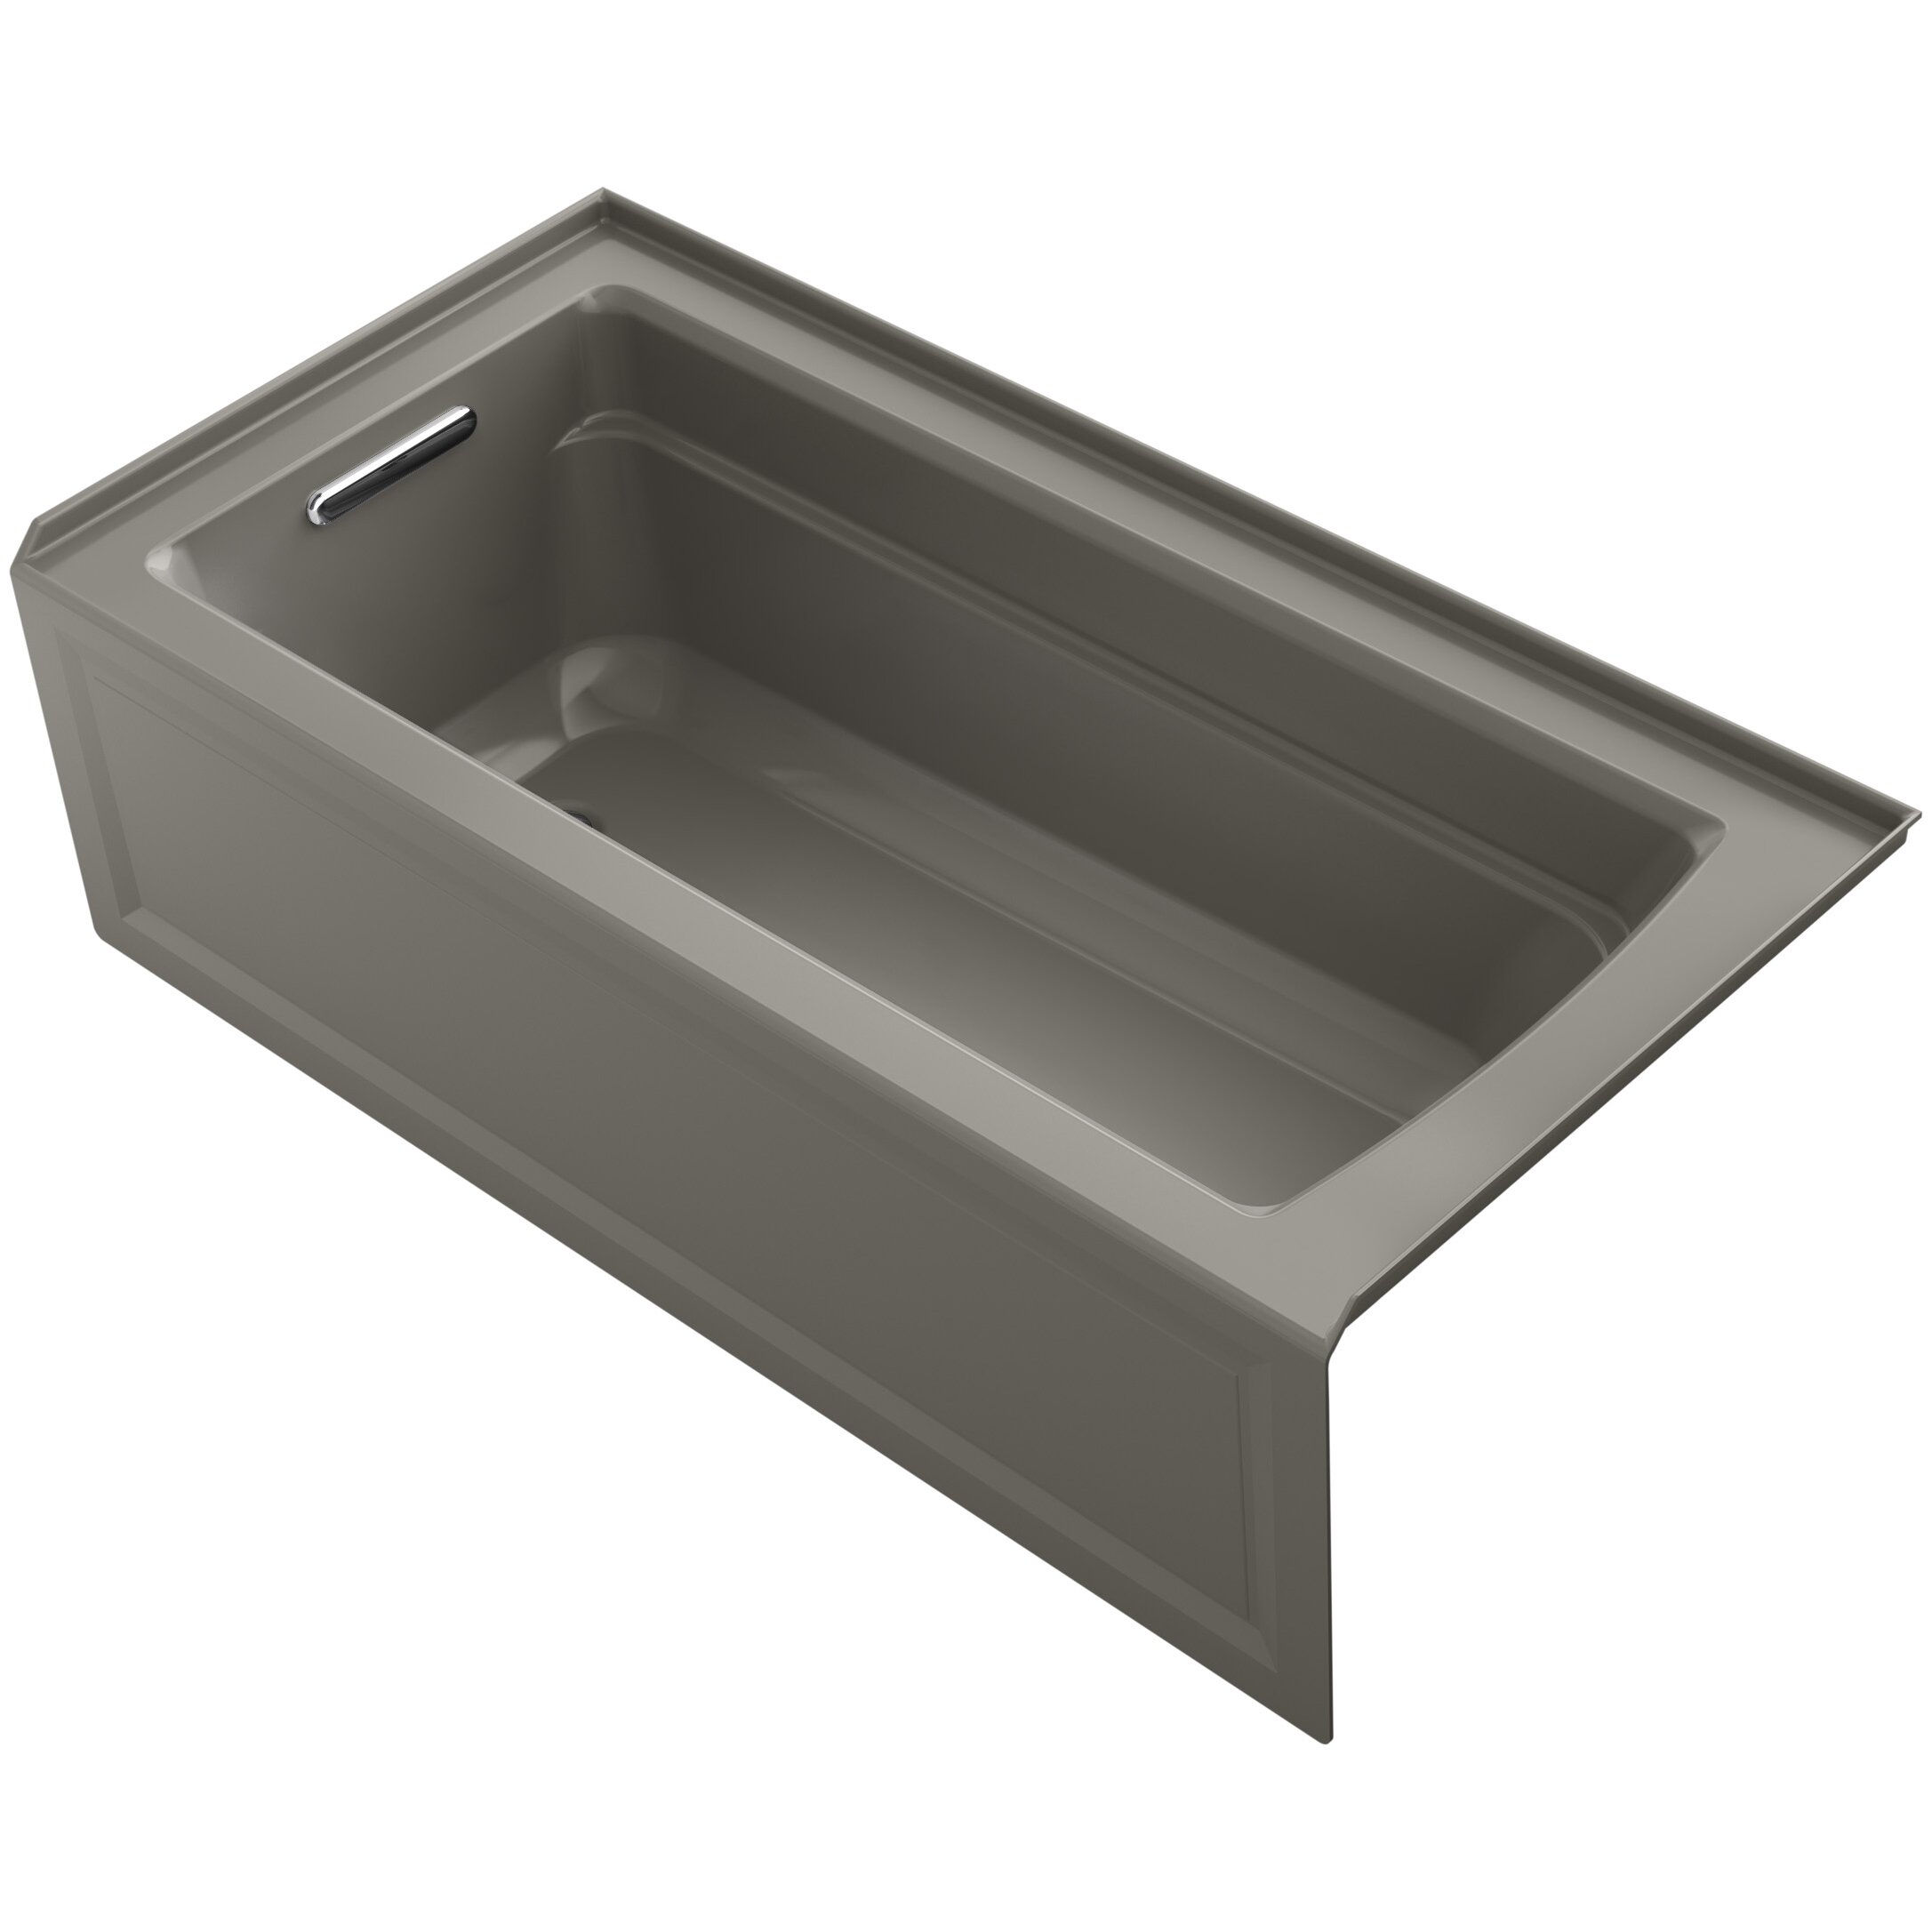 "Kohler Archer Exocrylic 66"" x 32"" Soaking Bathtub"